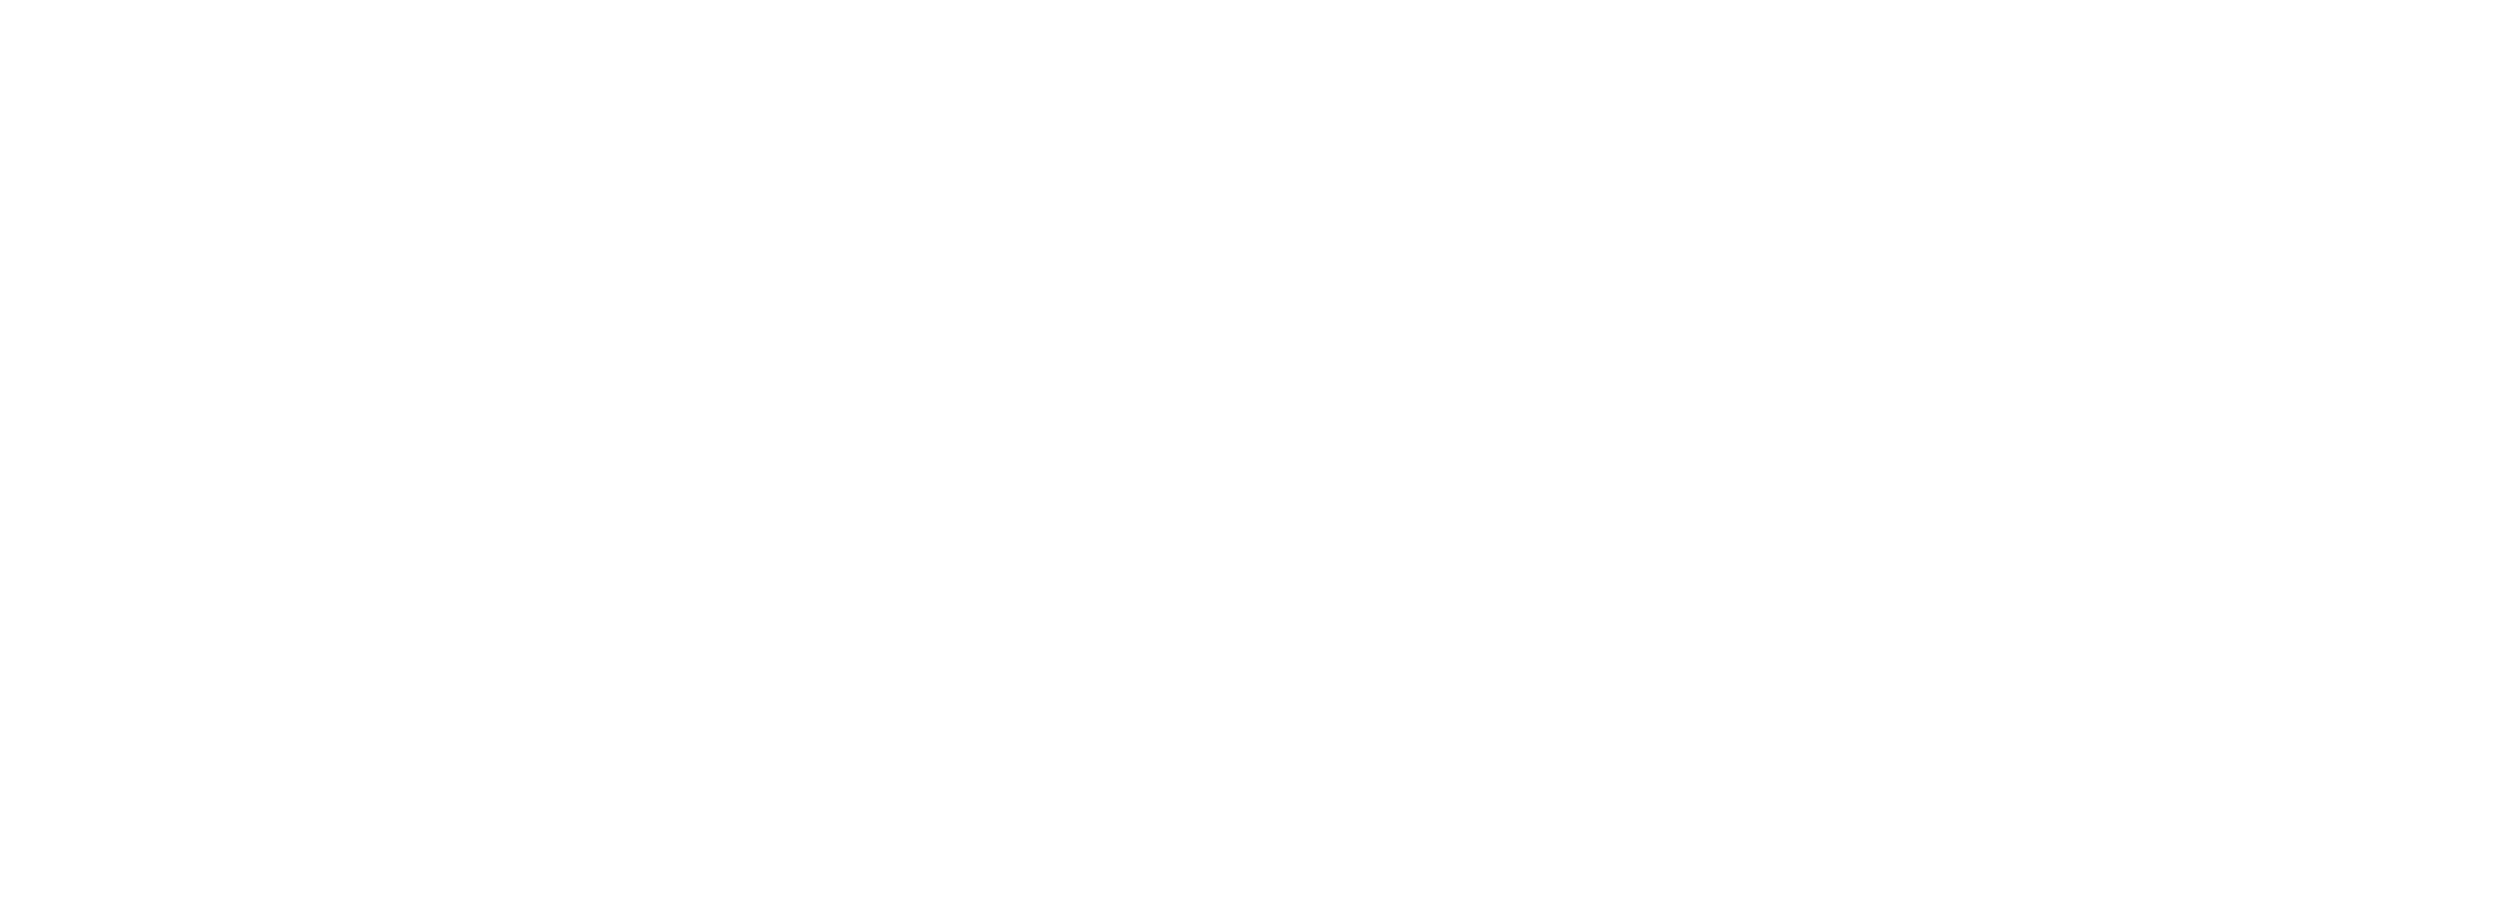 Believe2018_text.png